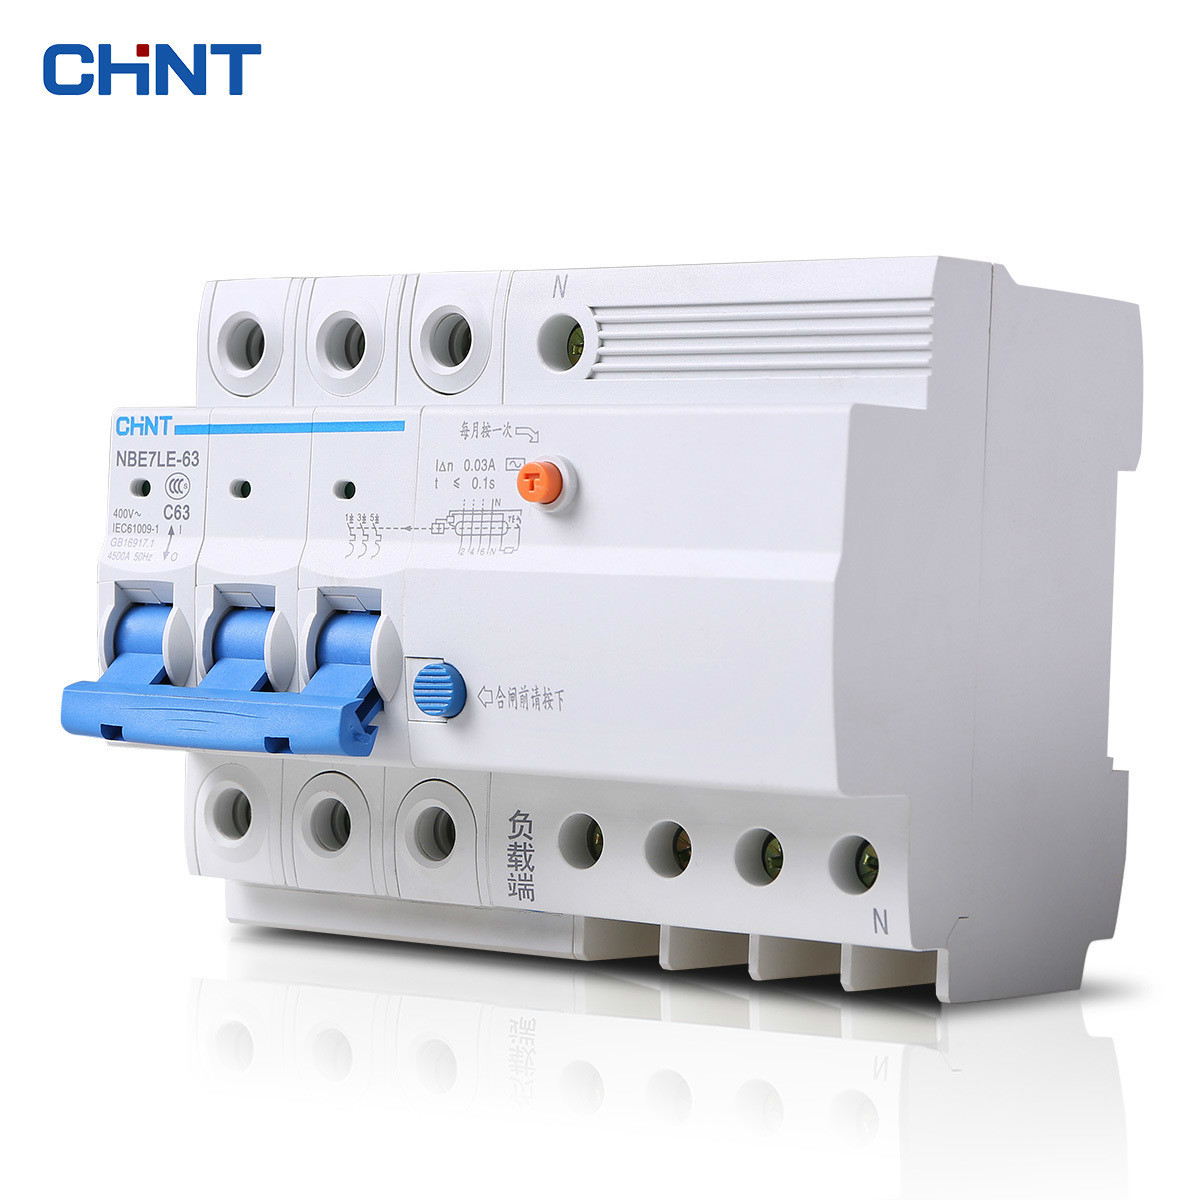 CHNT 3P+N 63A Miniature Circuit Breaker Household Type C Air Switch Moulded Case